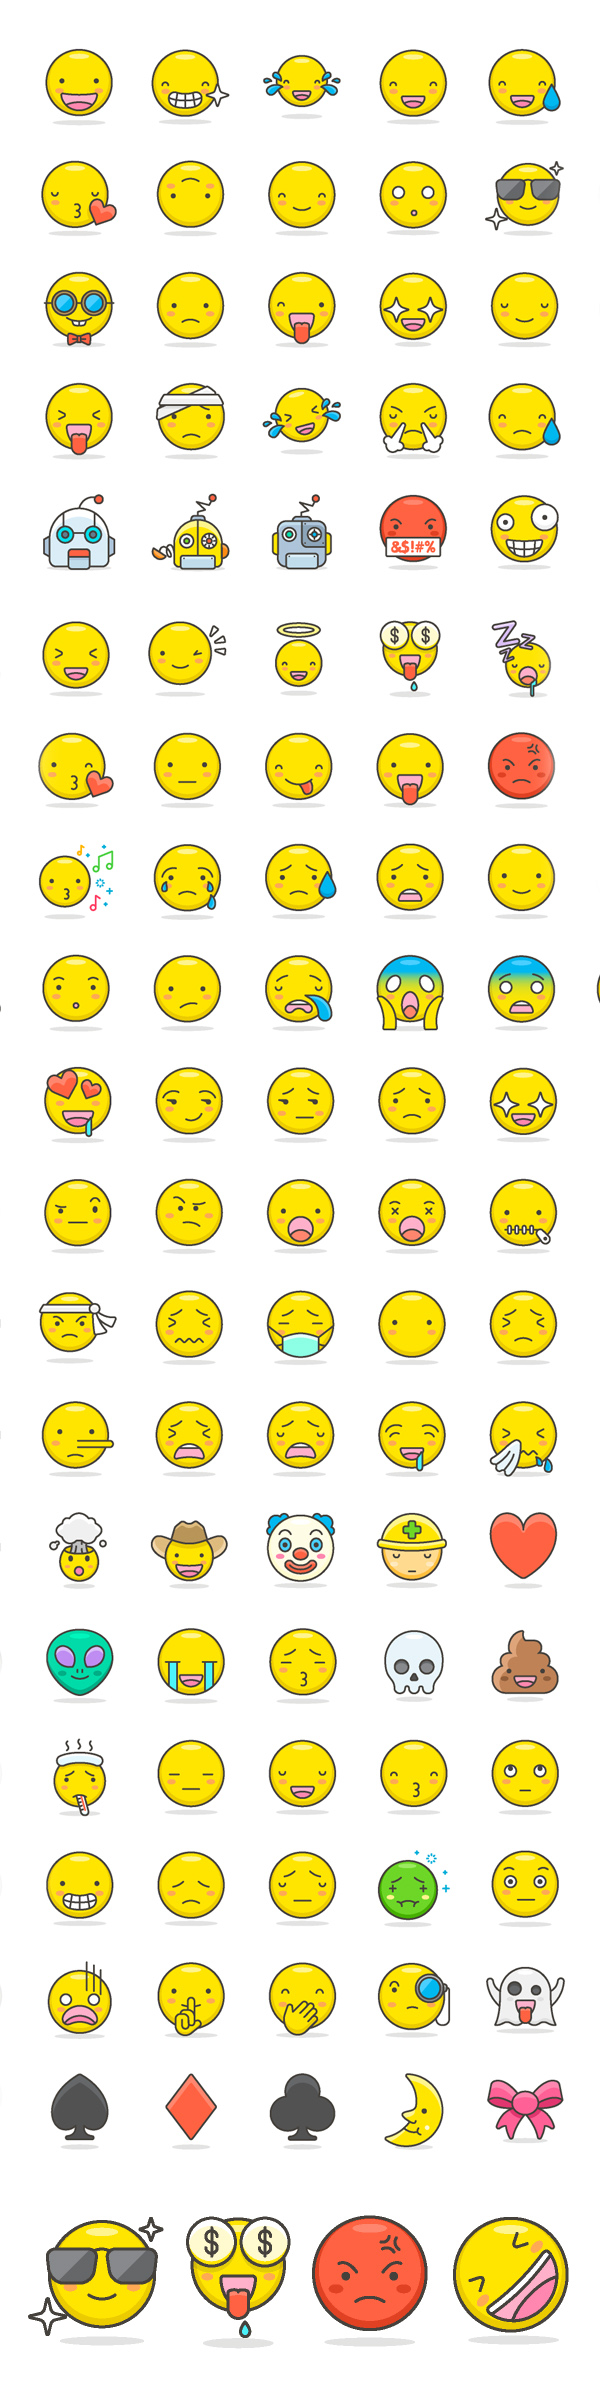 Free Cute Emoji Icons Set (100 Icons)